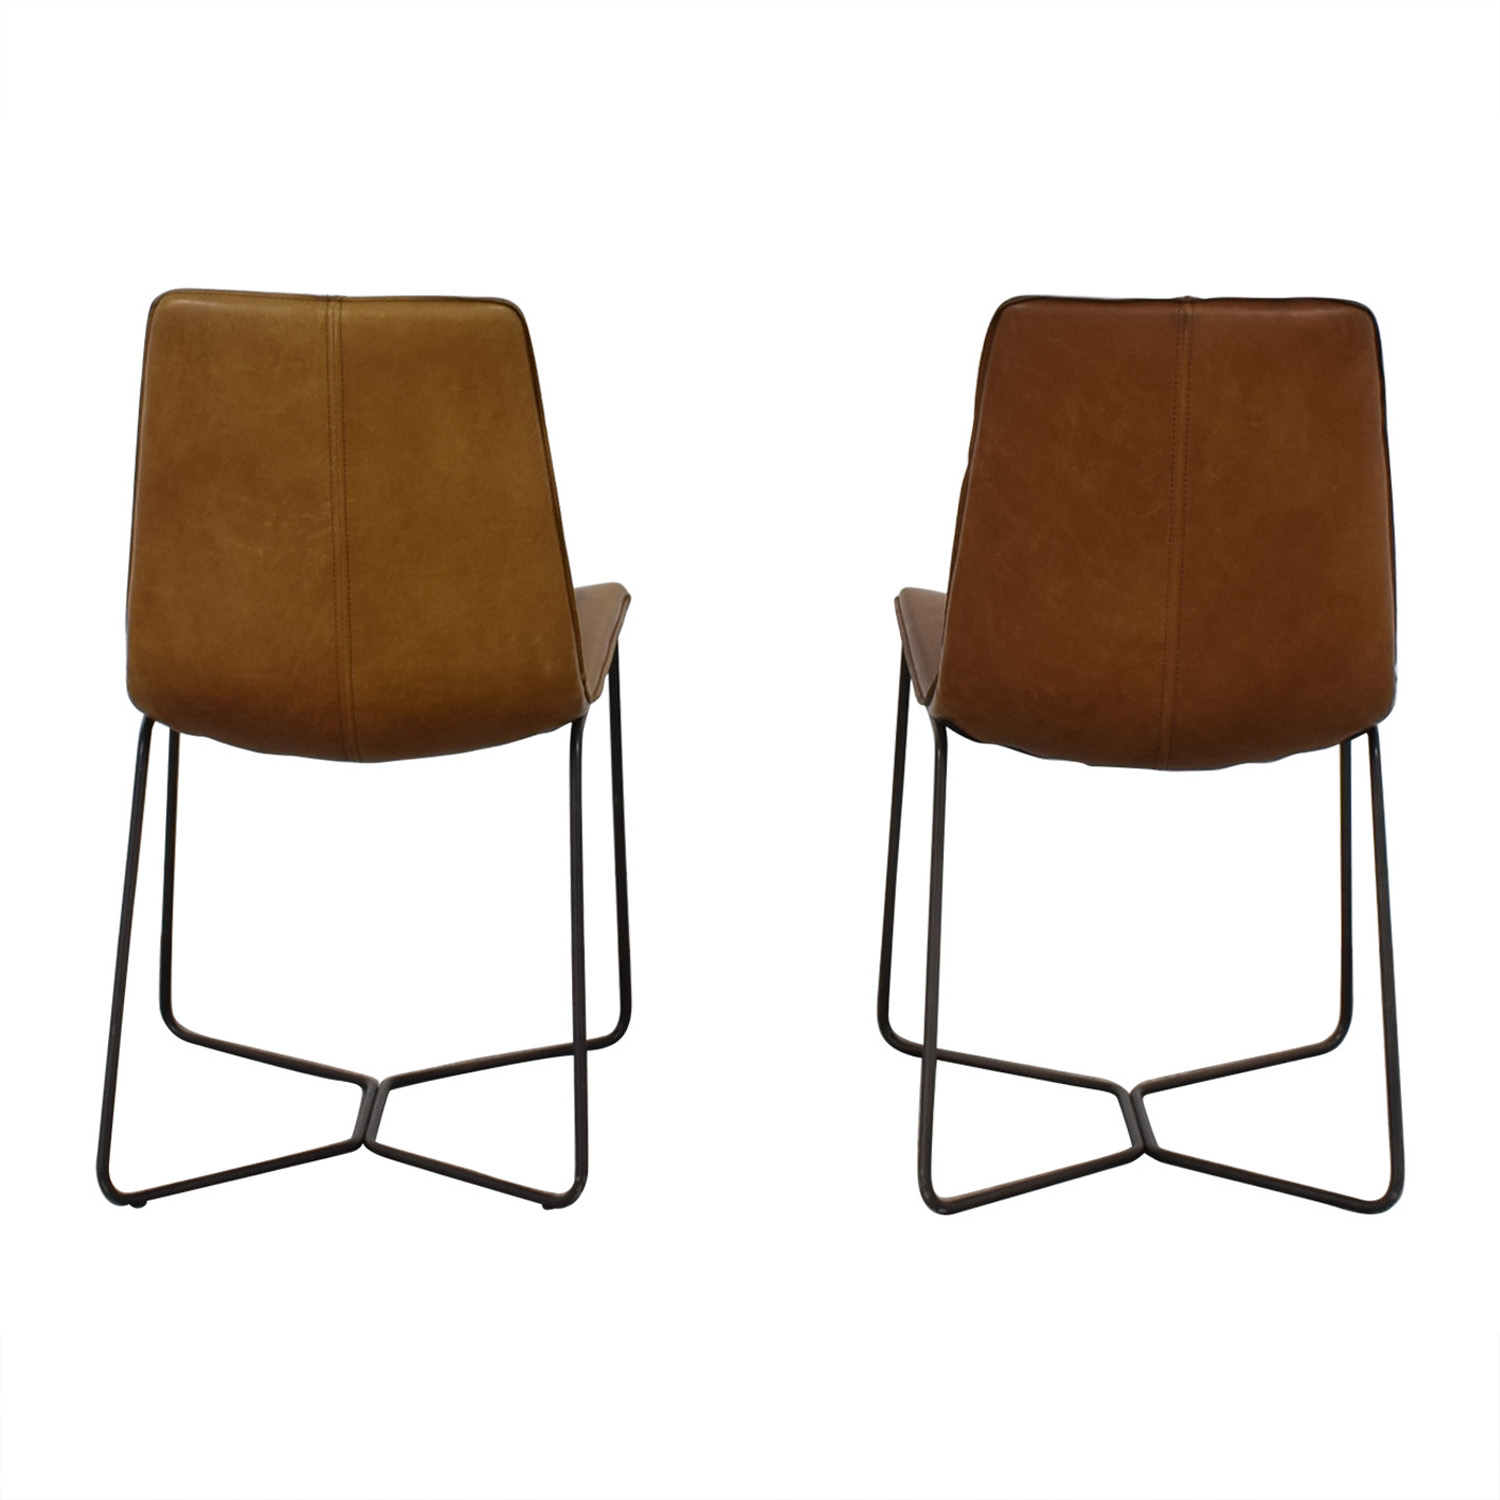 West Elm West Elm Brown Dining Chairs second hand